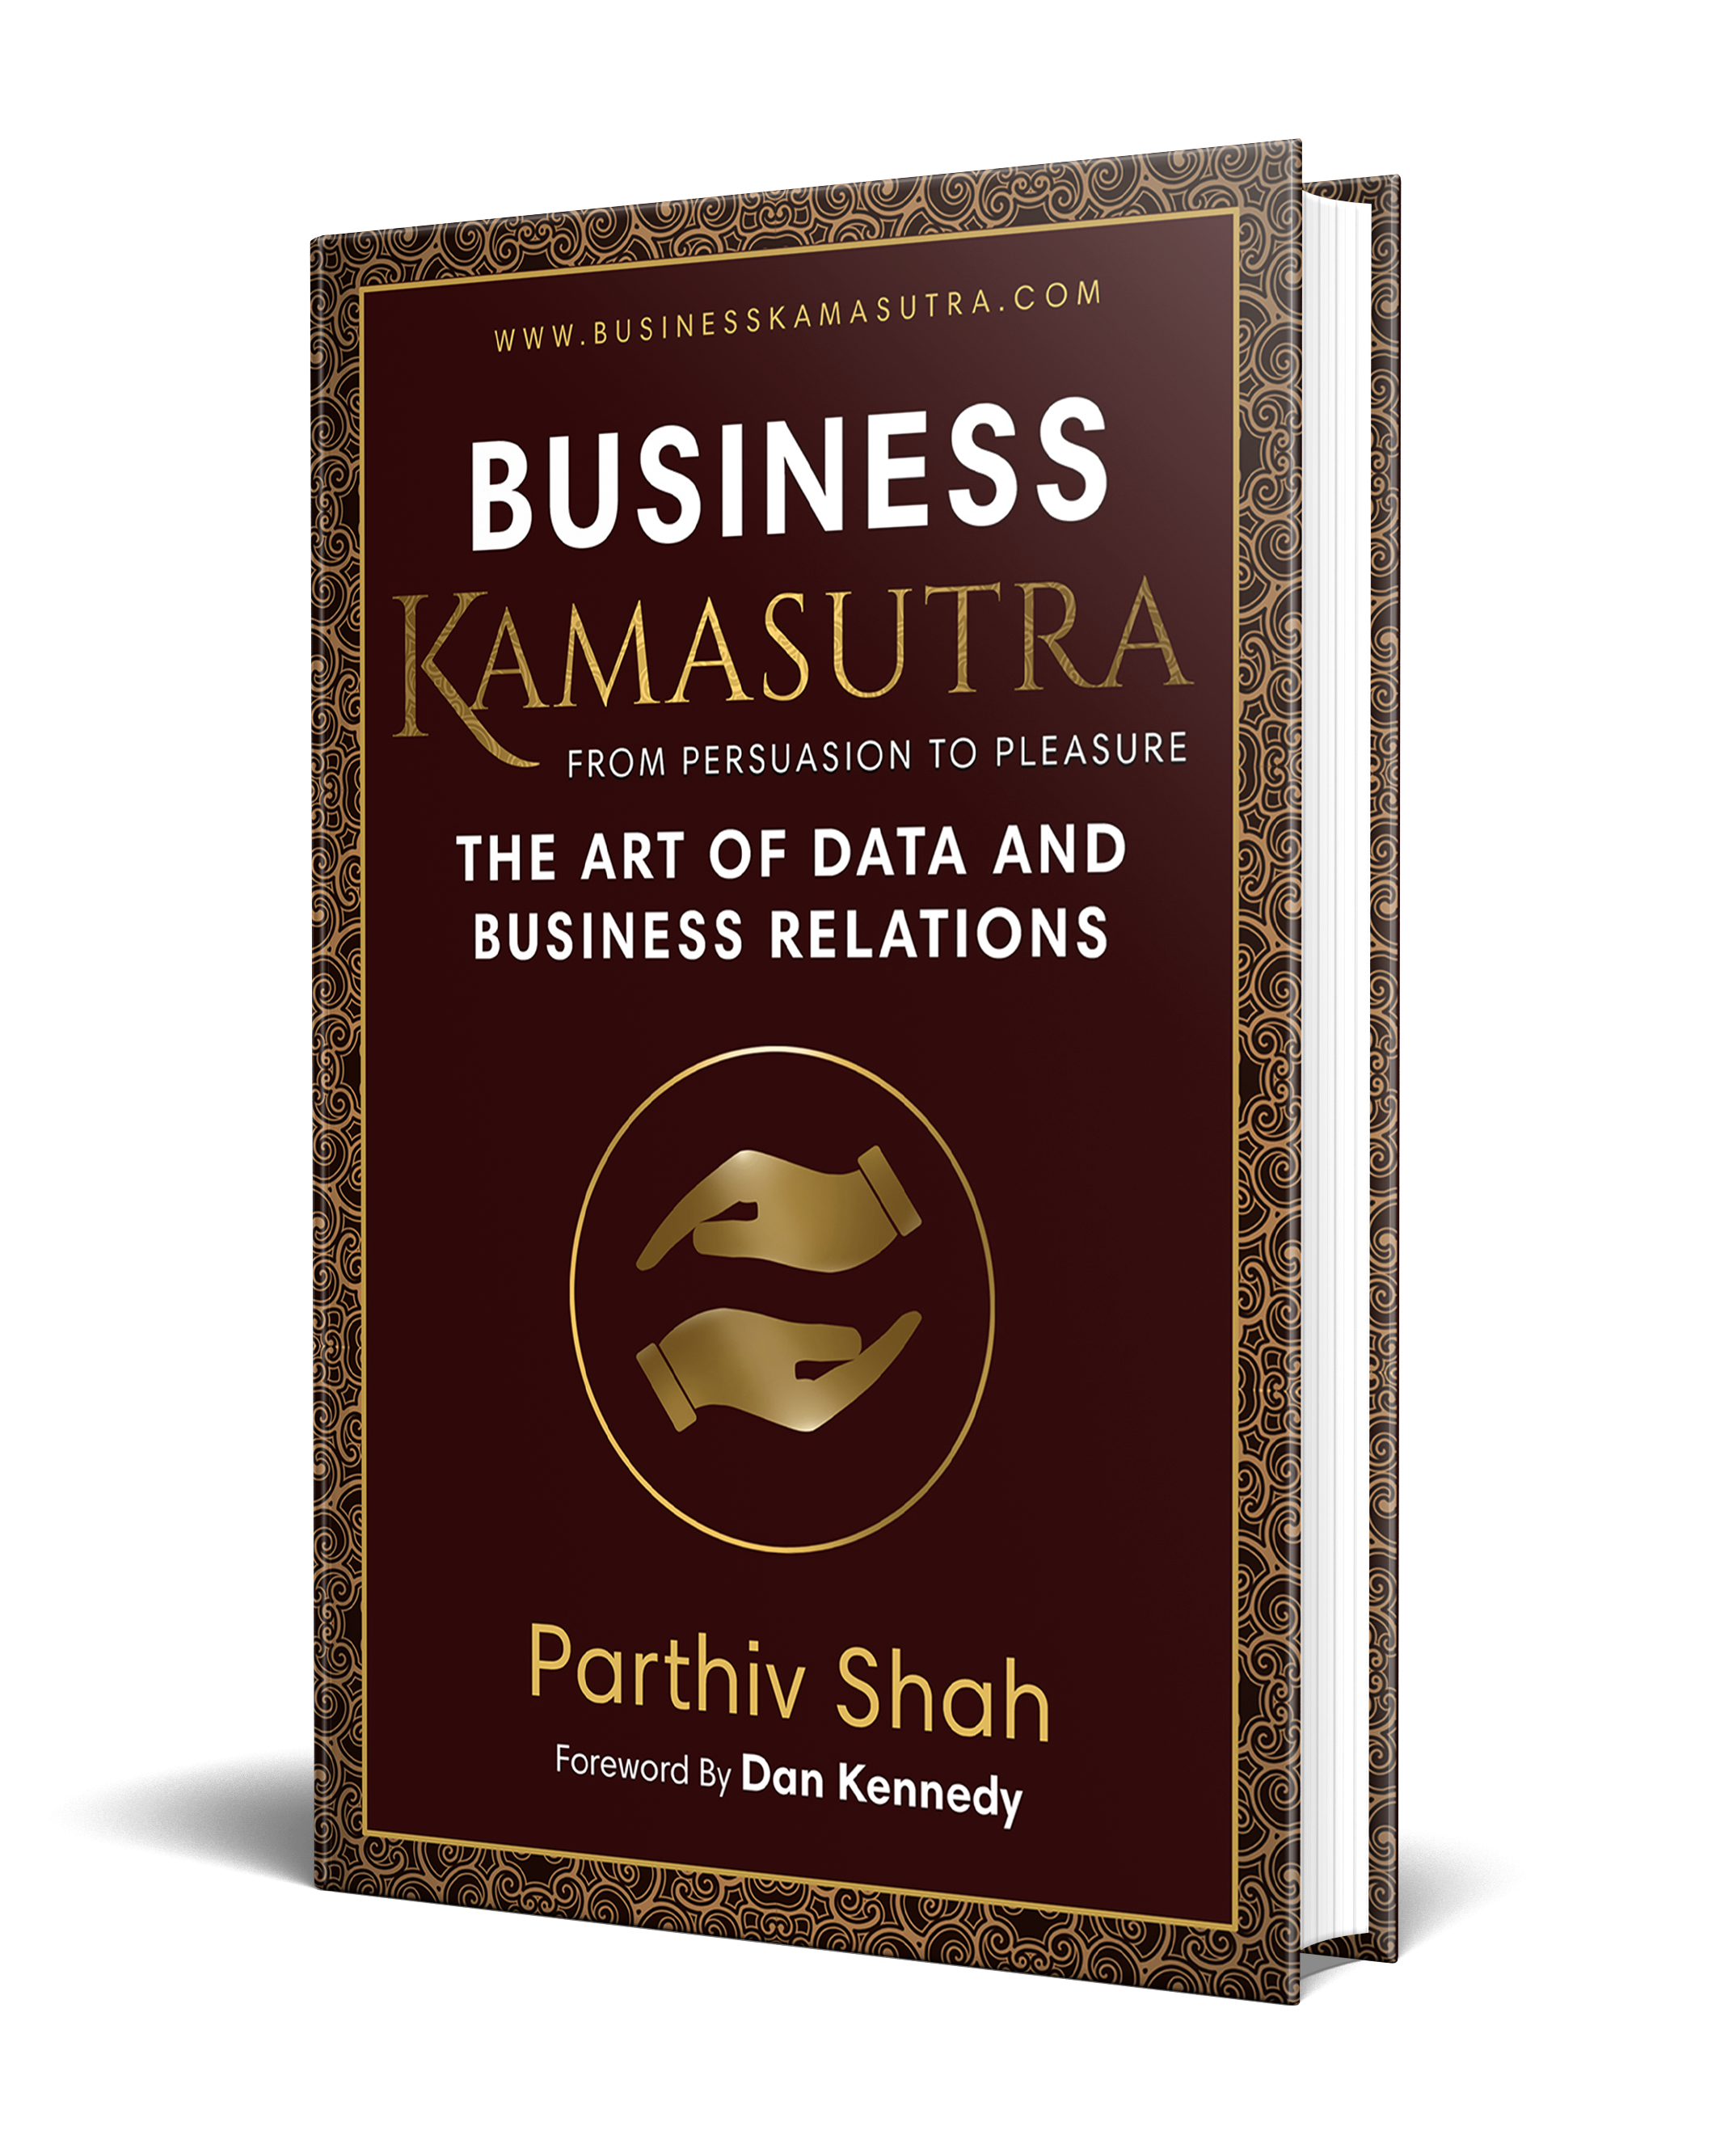 Business Kamasutra book by Parthiv Shah